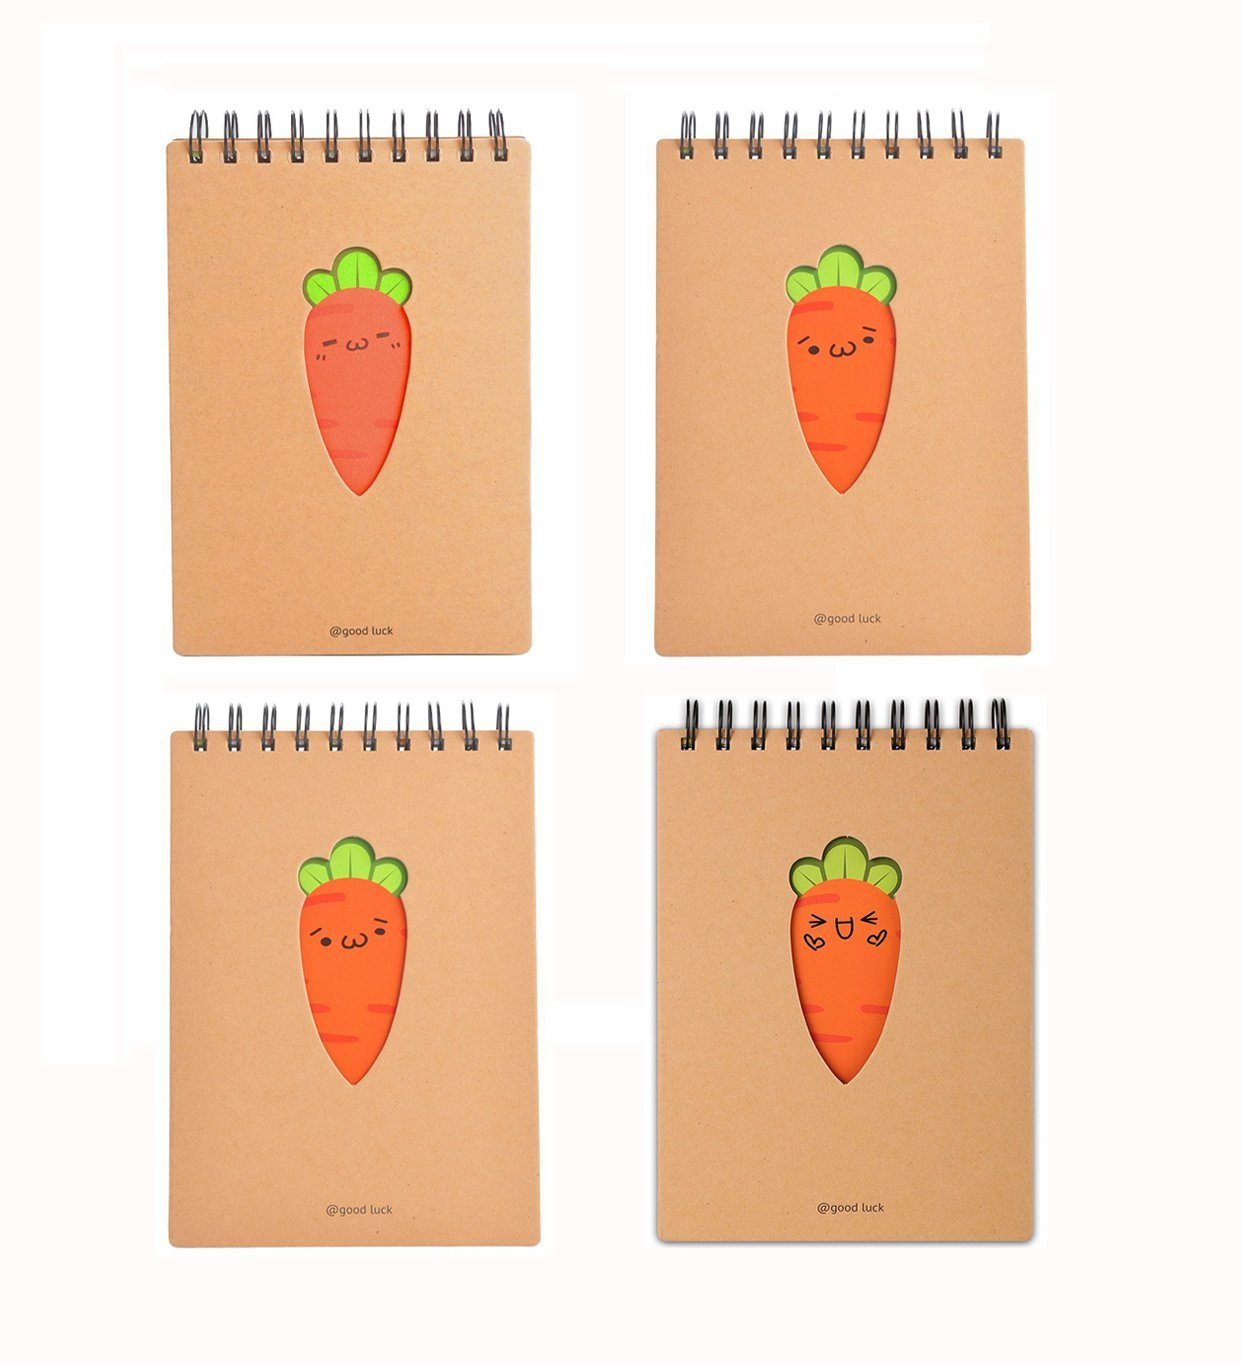 Ai-life 4Pcs Carrot Design Creative Top-Spiral Notepad Memo BooK Writing Journal Diary Planner Organizer, Mini Pocket Size Notepad Memo Pad Scratch Pad, 4Pcs Per Pack